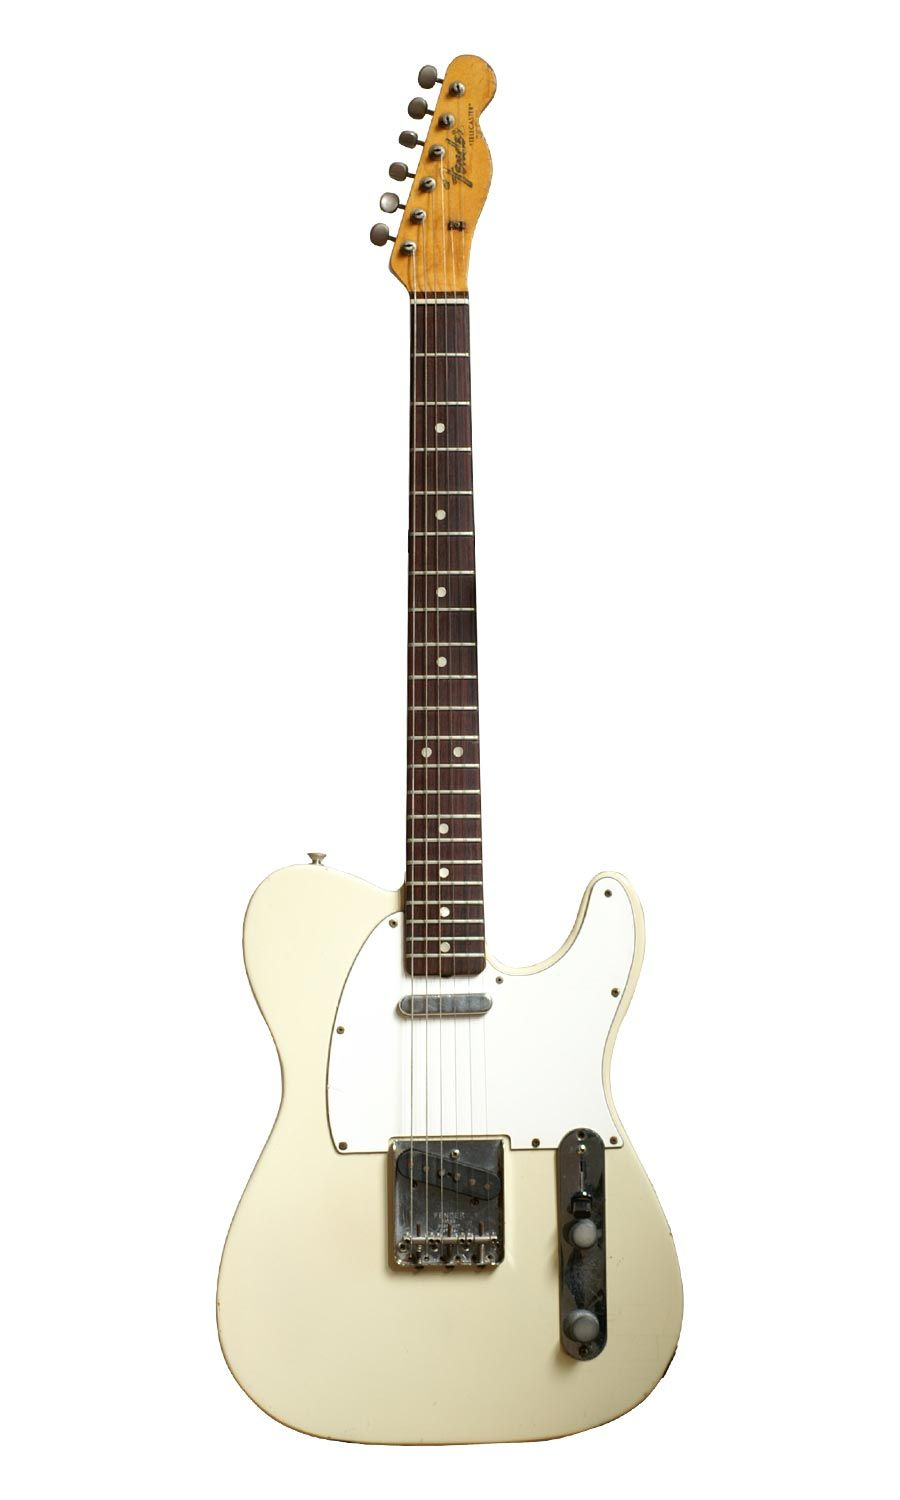 Rorys guitars fender model telecaster white year 1966 rorys guitars fender model telecaster white year 1966 instrument archive rory cheapraybanclubmaster Gallery